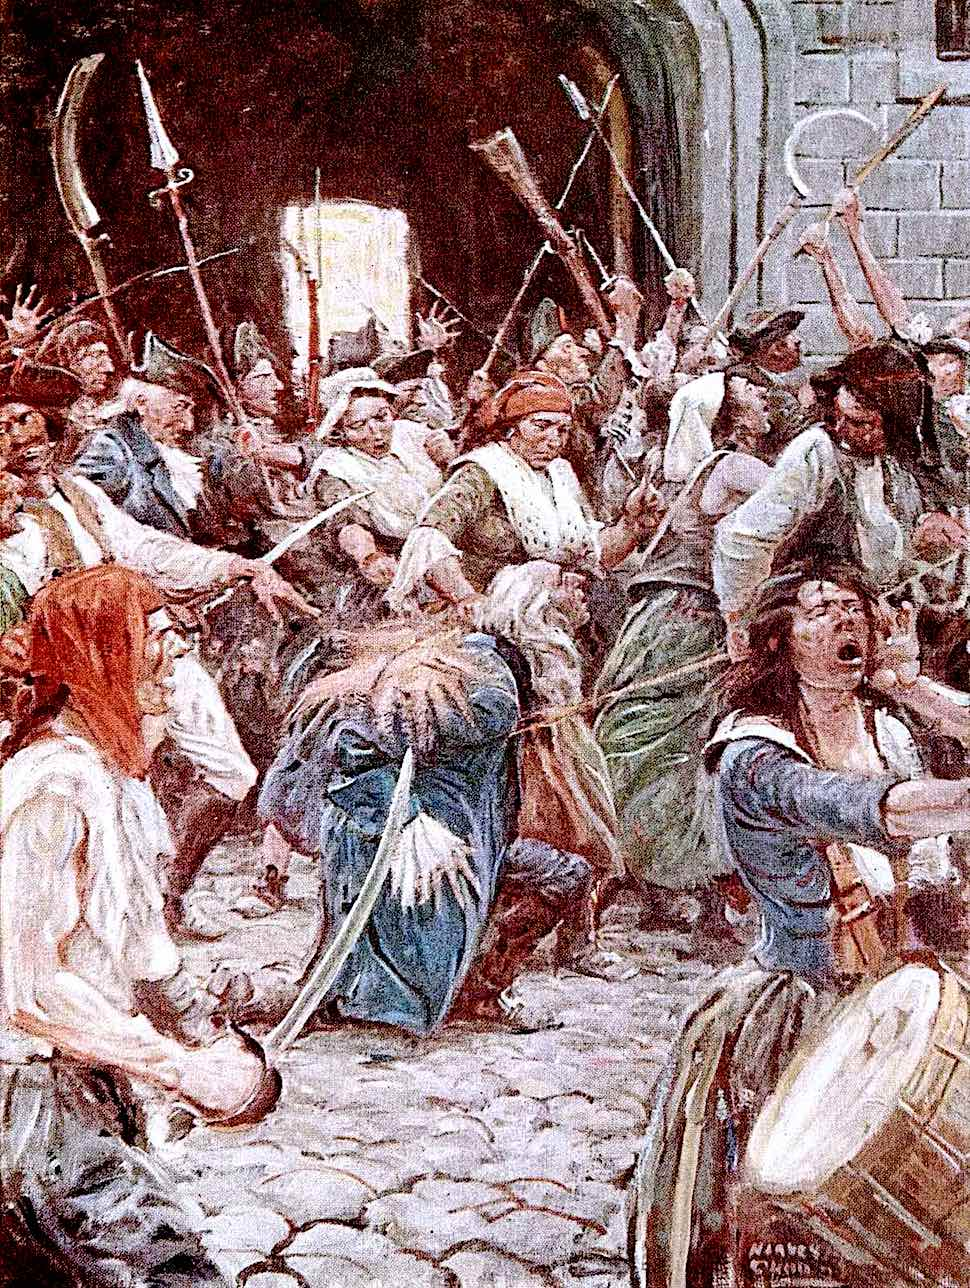 a Harvey Dunn illustration of the French revolution mob:  40,000 killed by guillotine